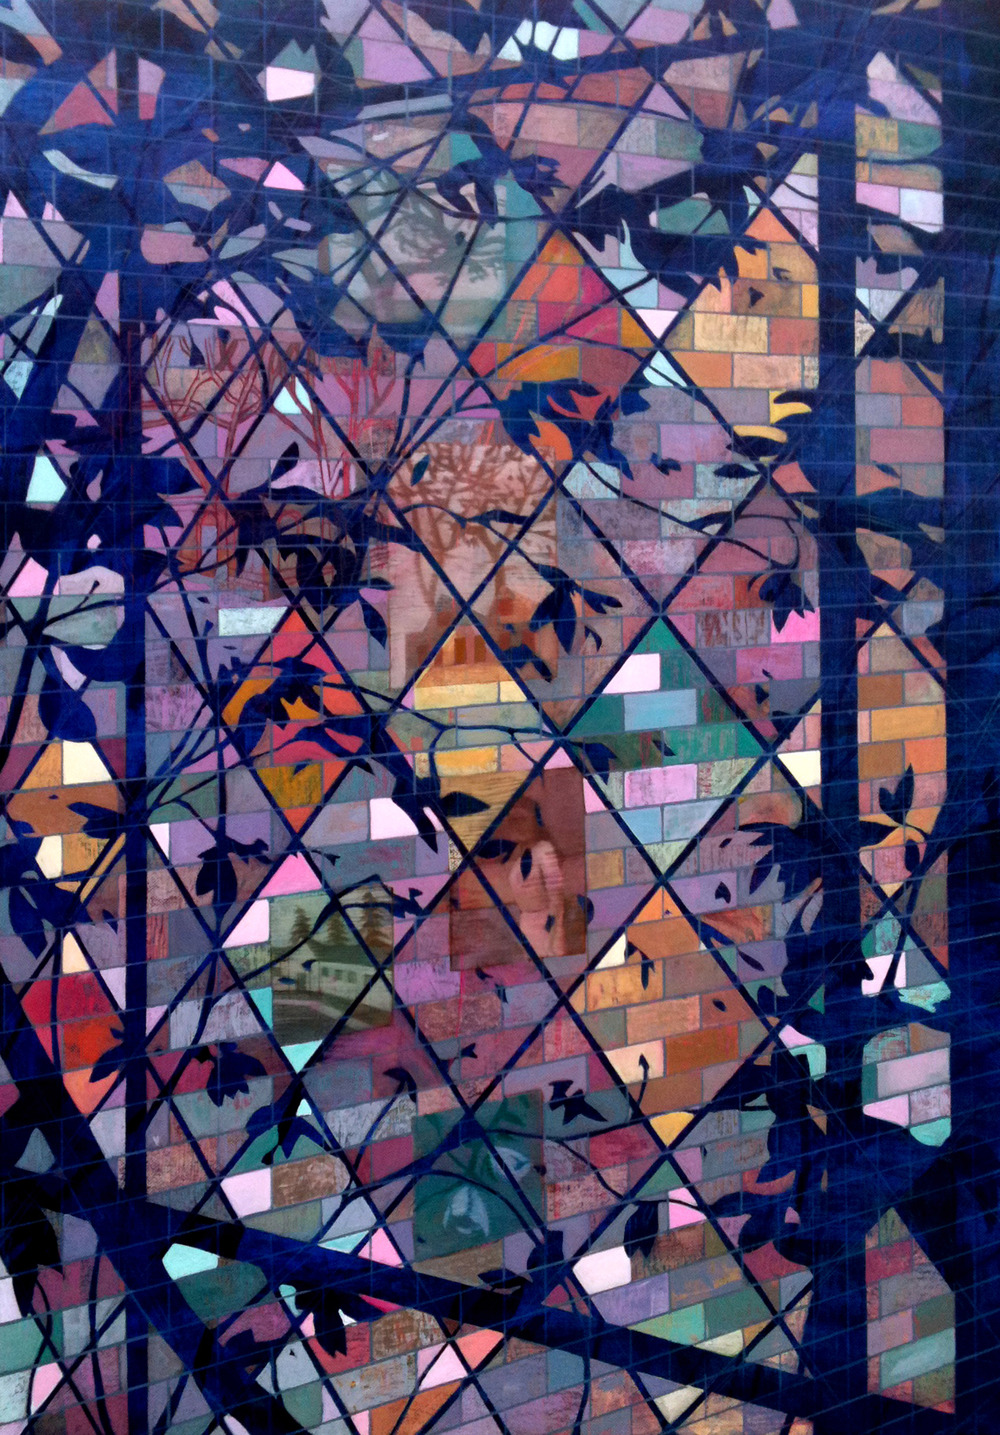 ​Church Window   29 x 21  Oil On Canvas  2013